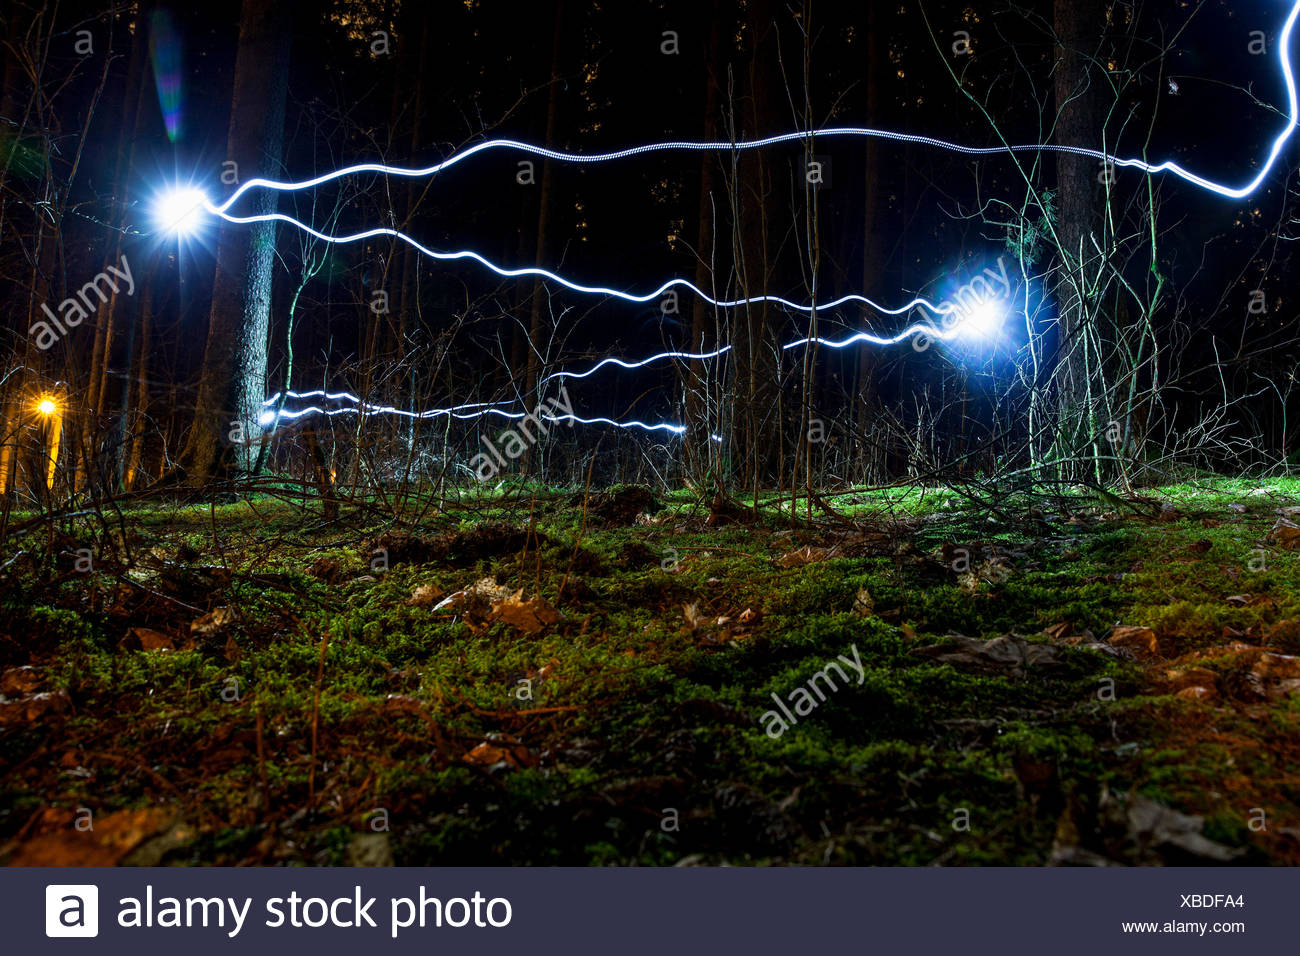 Blue light trails in forest - Stock Image